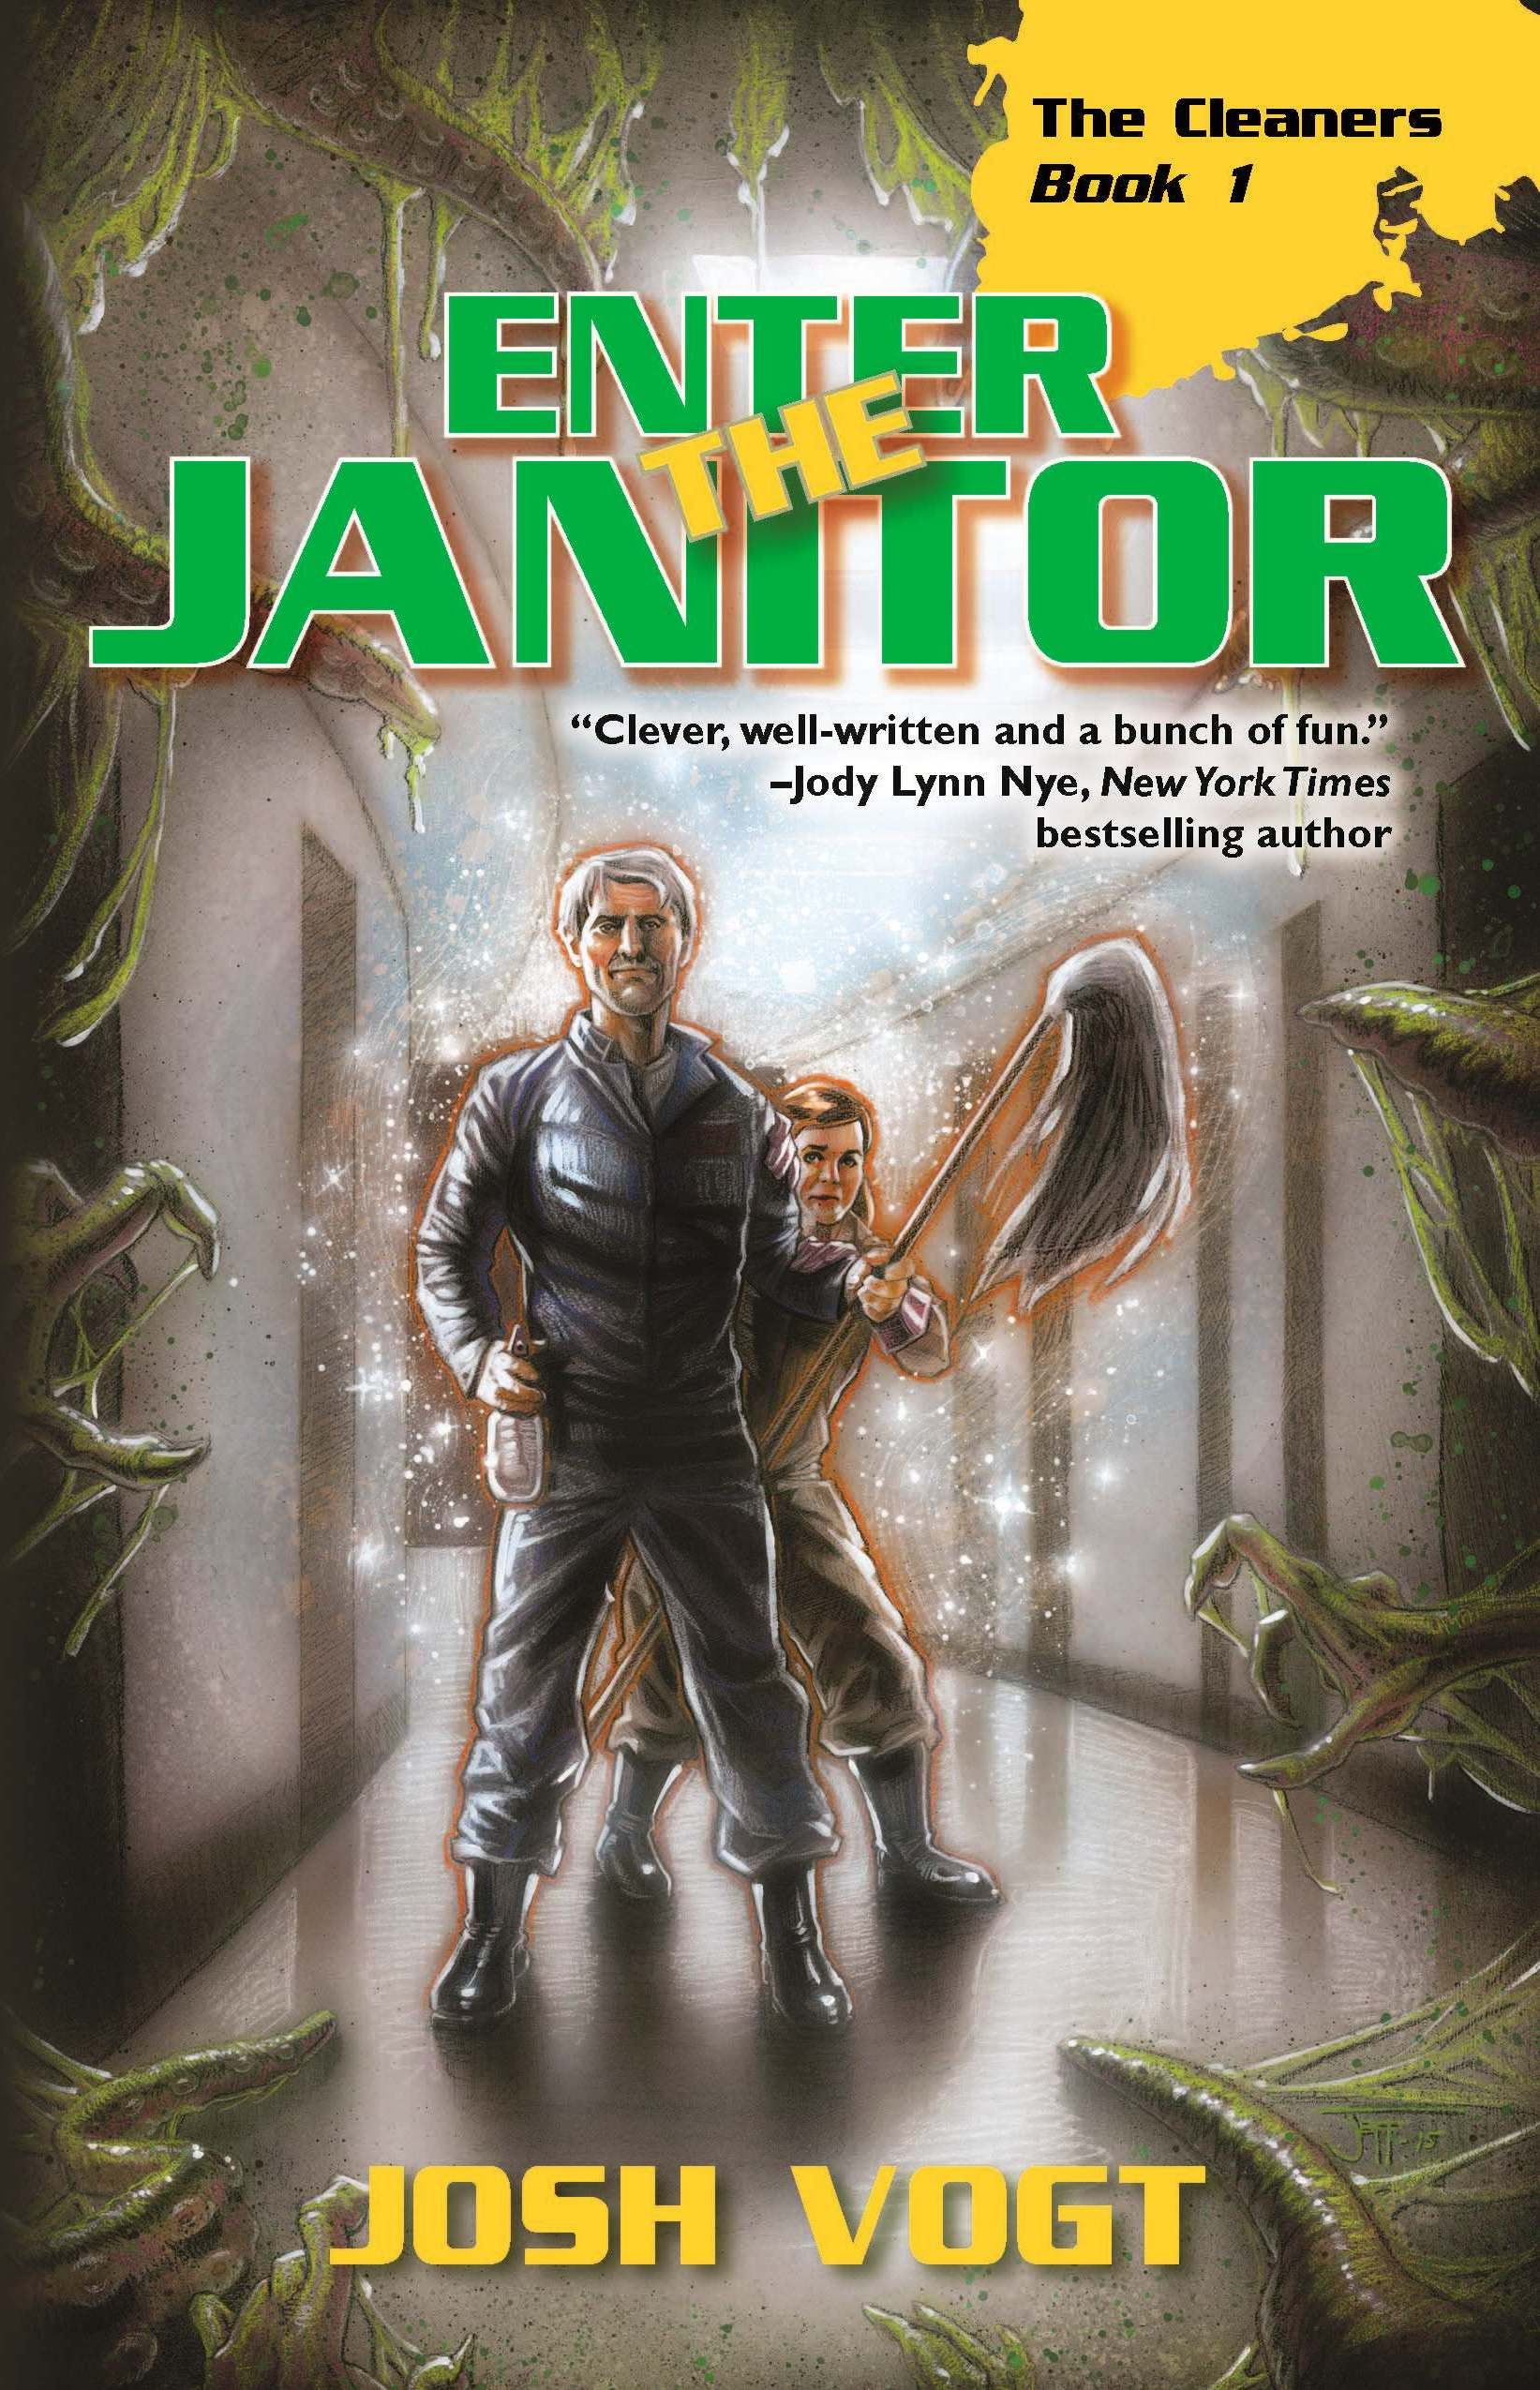 Interview with Josh Vogt, author of Enter the Janitor